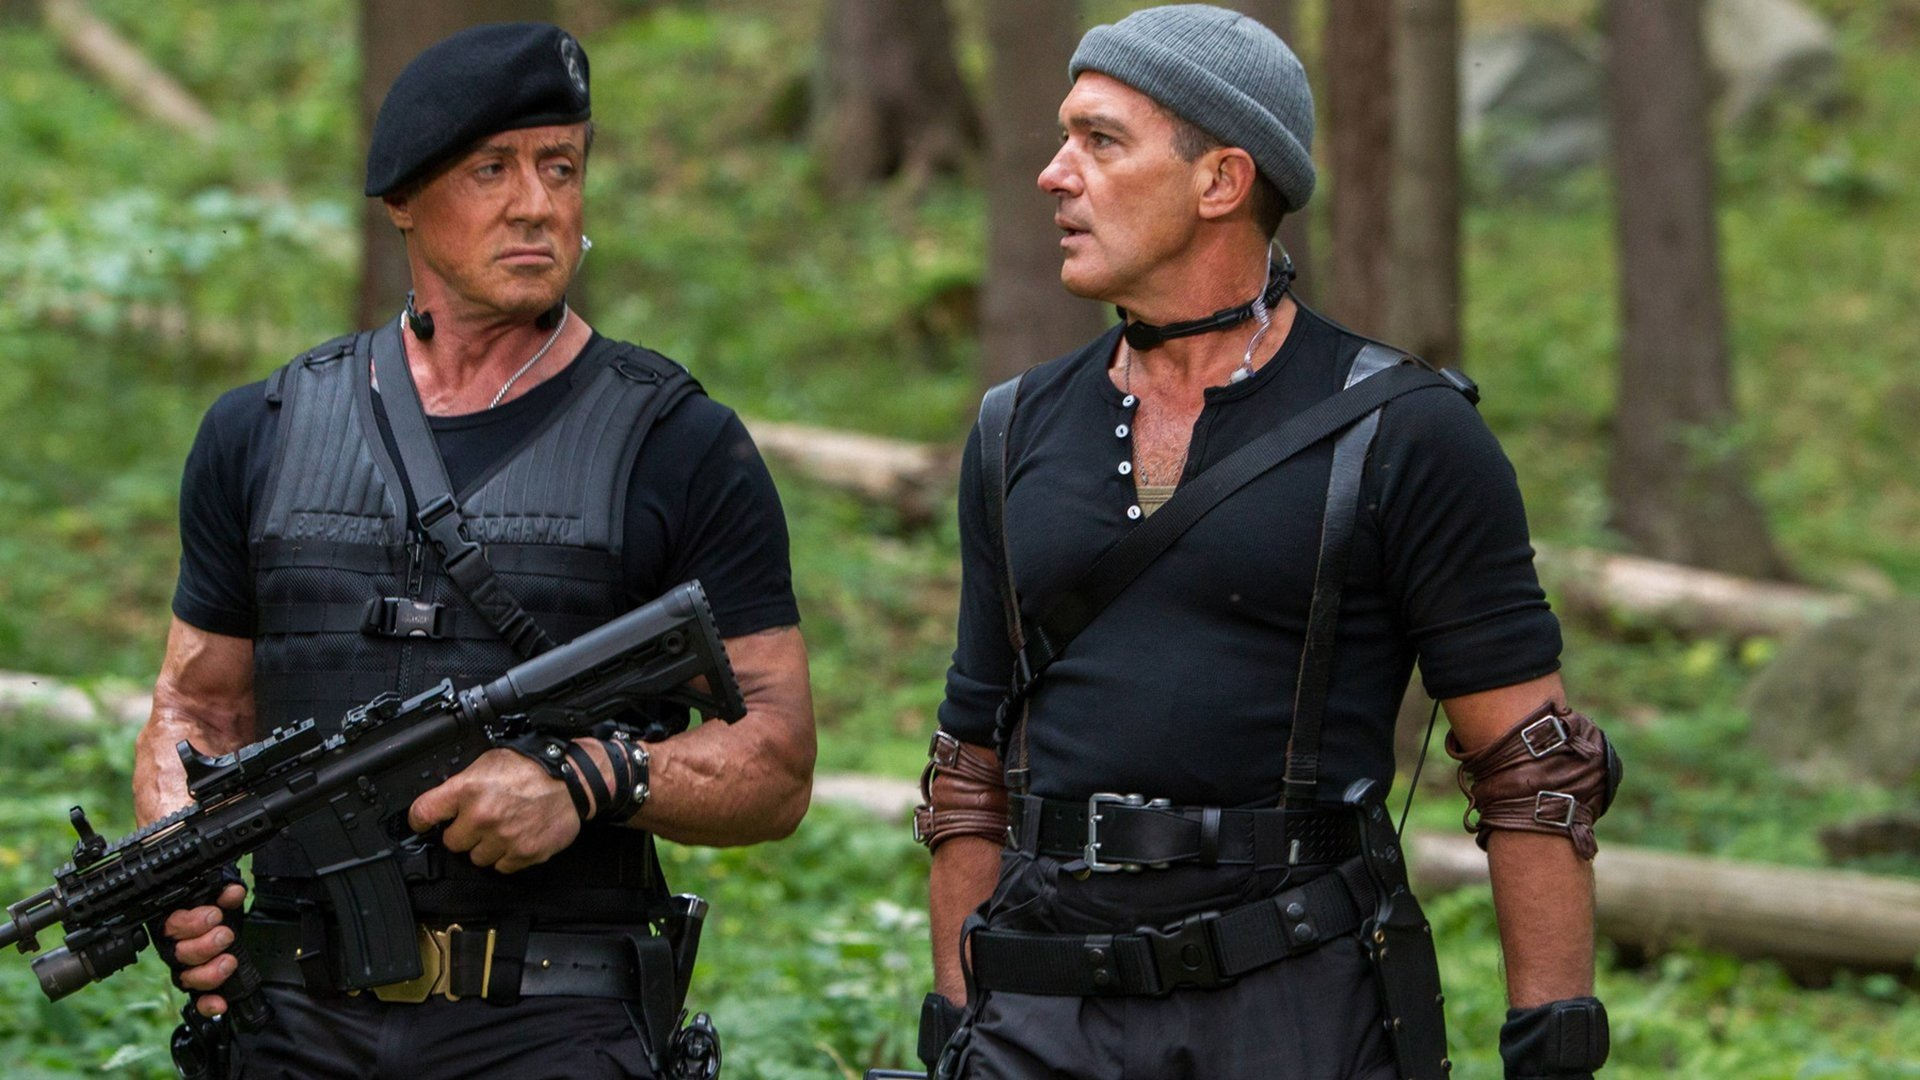 Download hd 1080p The Expendables 3 desktop background ID:473476 for free